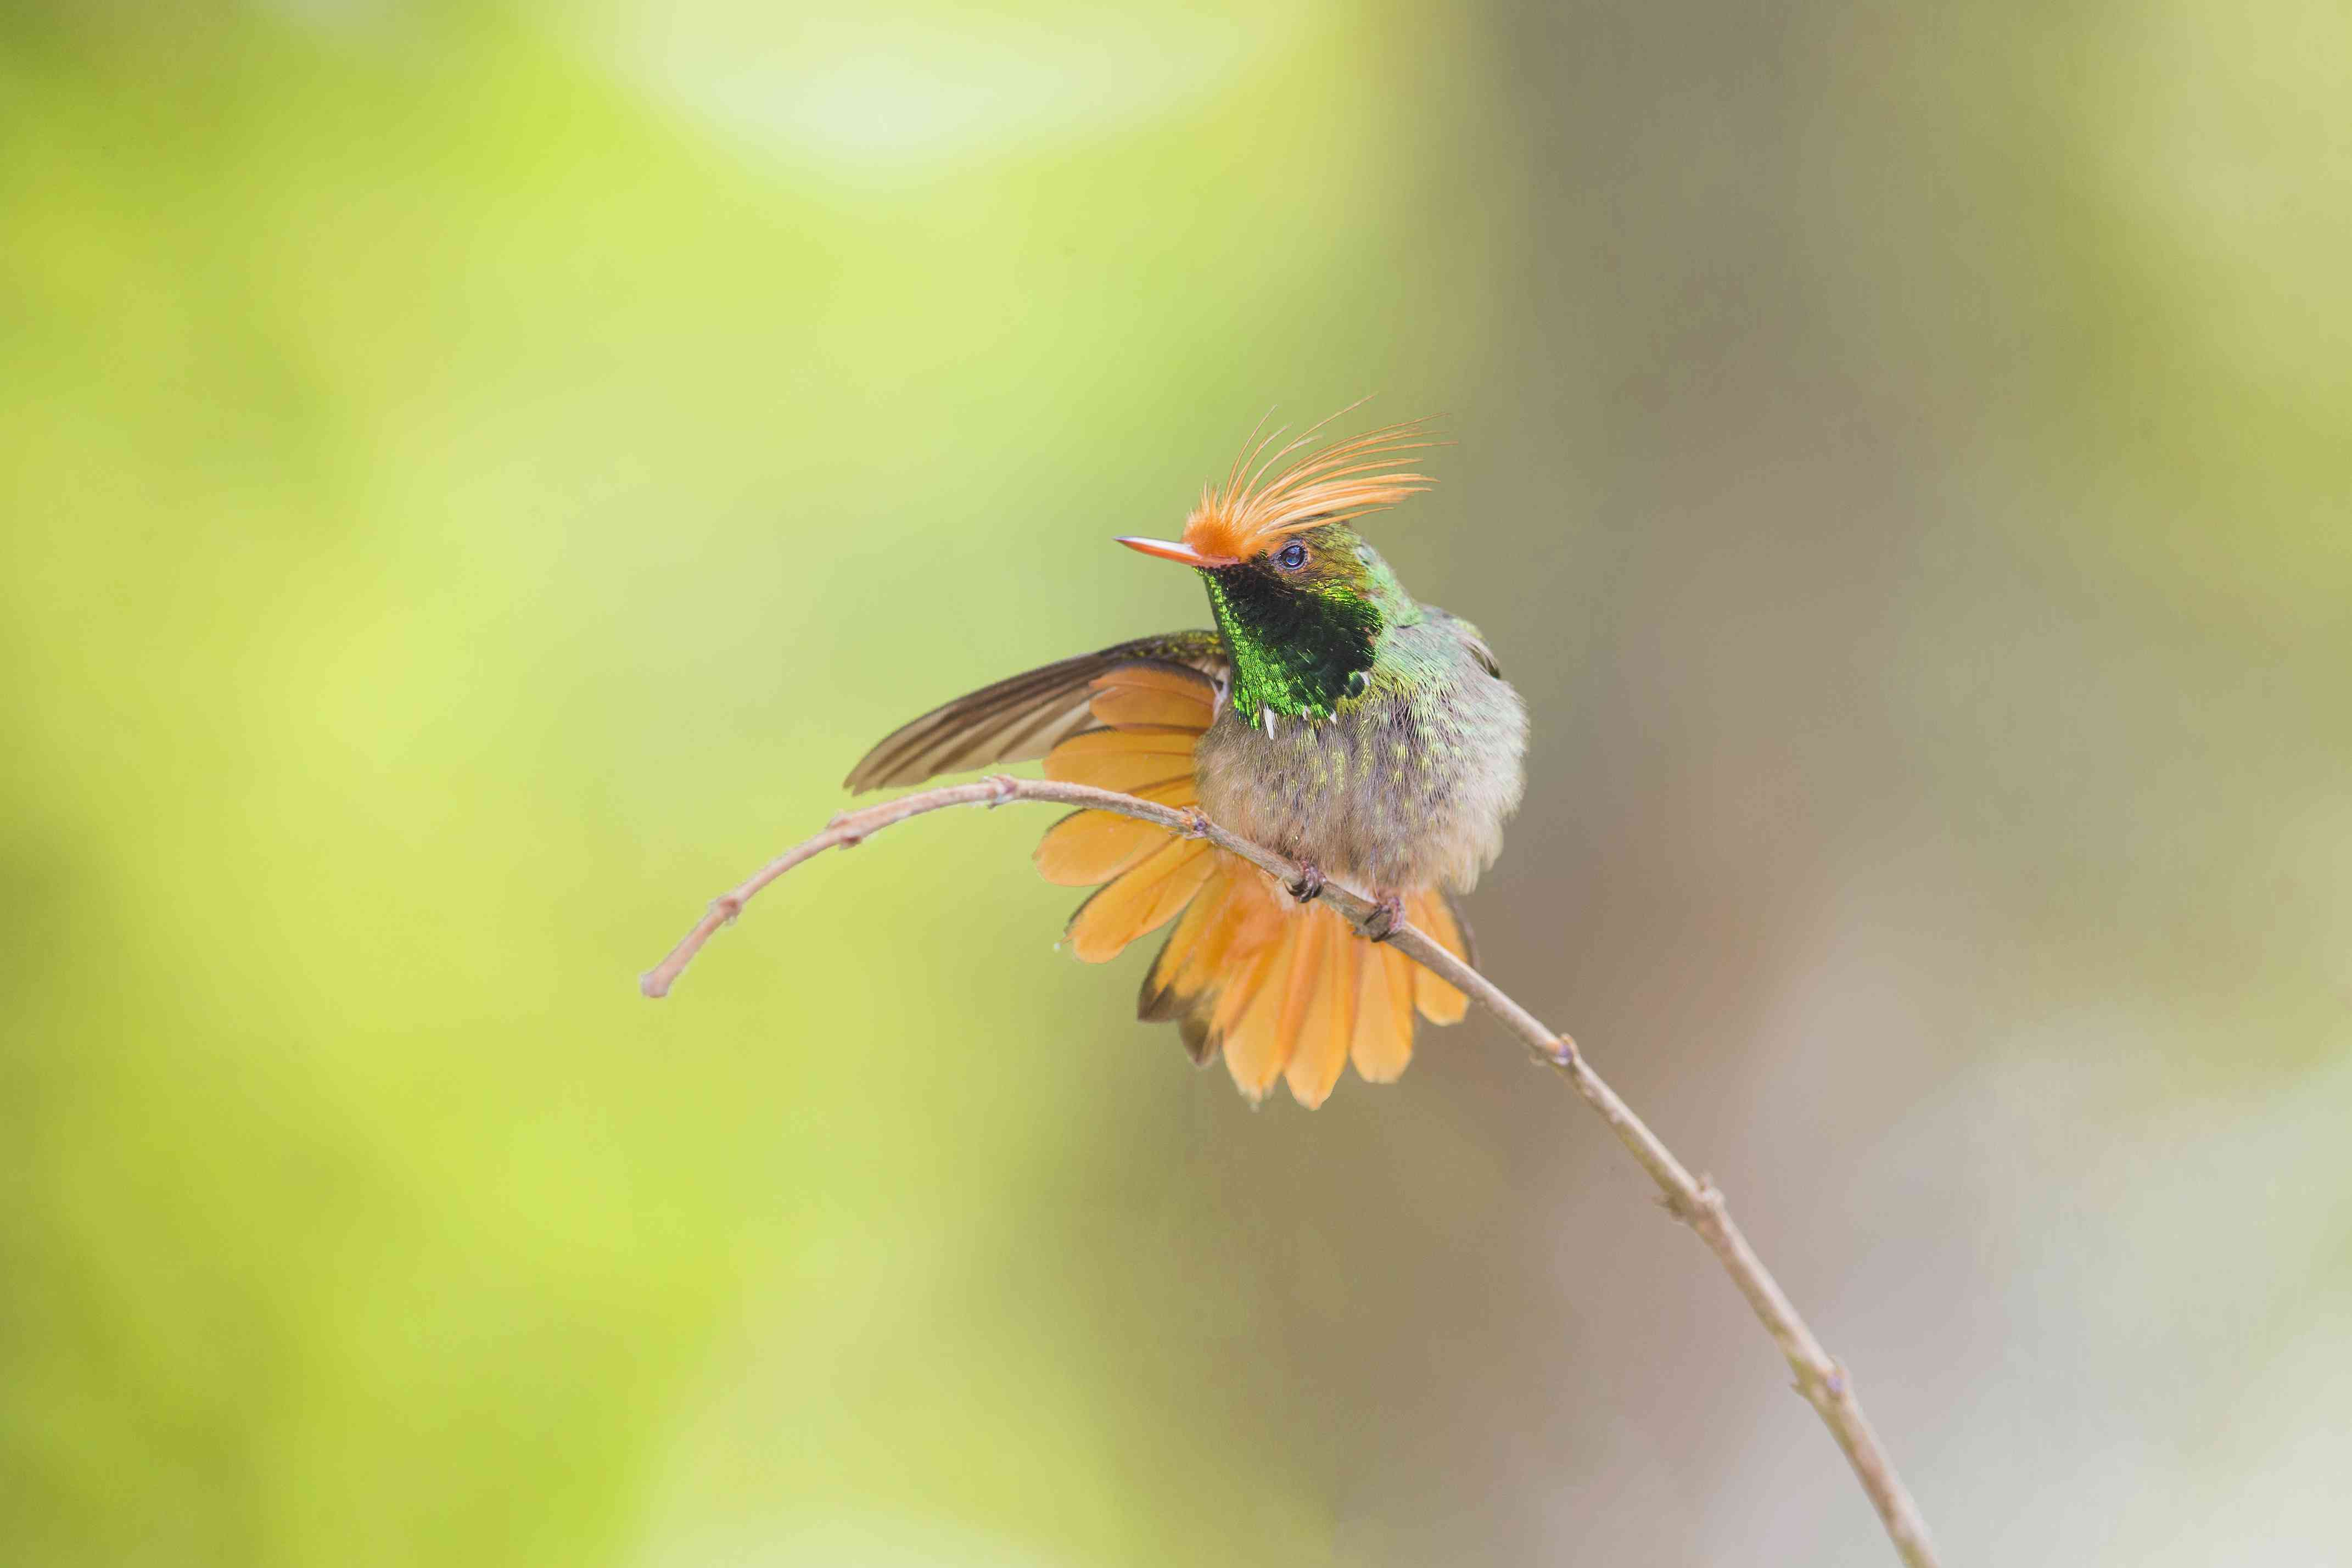 Rufous-crested coquette hummingbird sitting on a twig